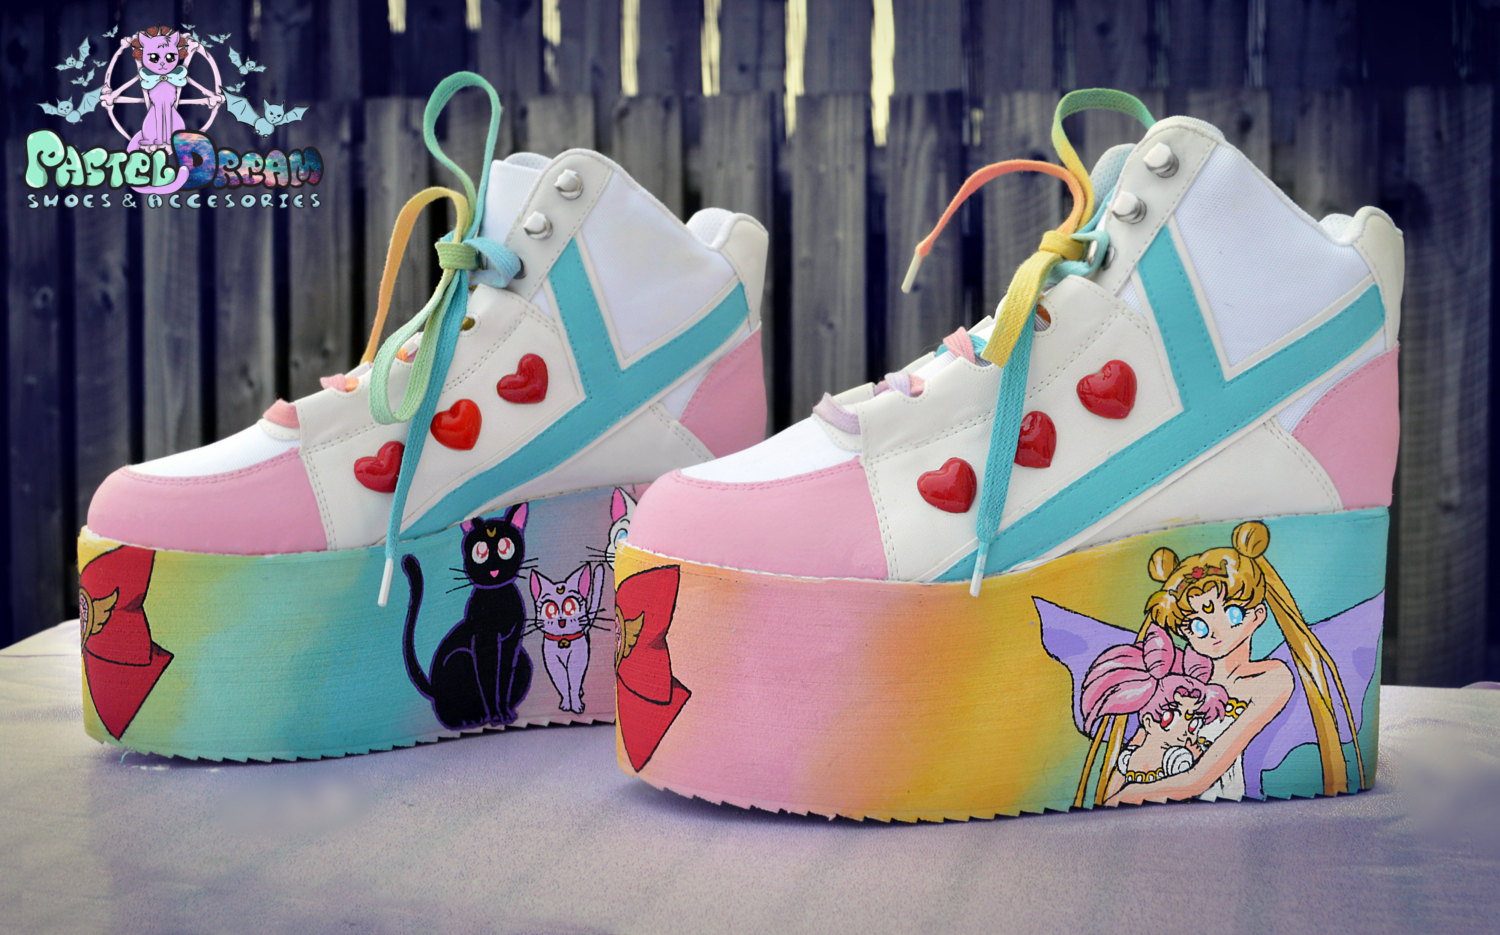 Hand painted sailor moon inspired platform flatform shoes ...